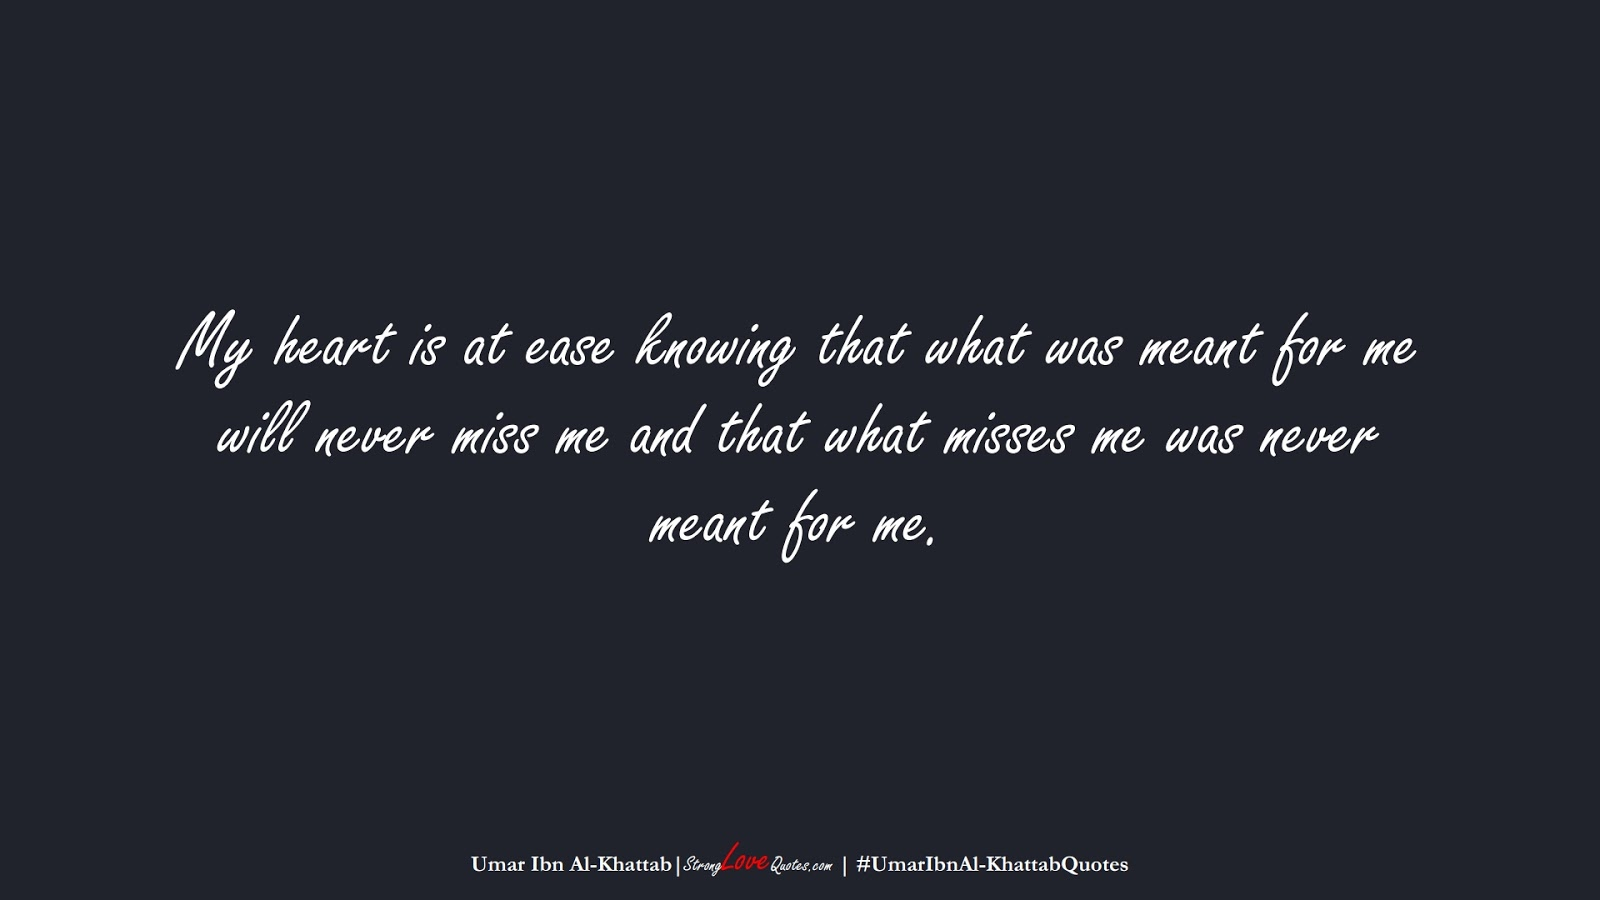 My heart is at ease knowing that what was meant for me will never miss me and that what misses me was never meant for me. (Umar Ibn Al-Khattab);  #UmarIbnAl-KhattabQuotes